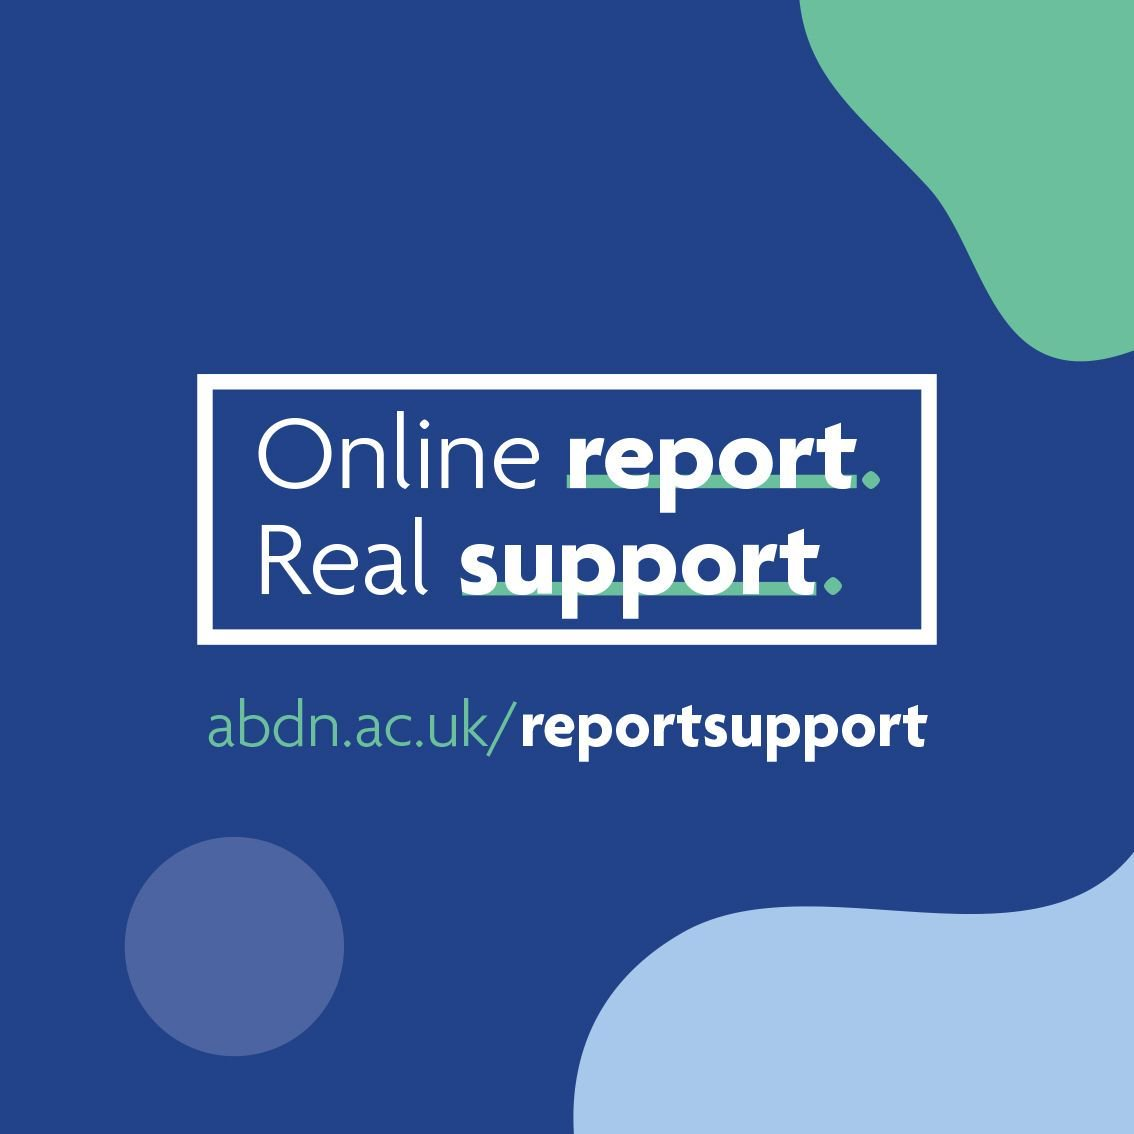 We have a zero tolerance policy against sexual harassment and violence. Our confidential reporting tool allows anyone in the @aberdeenuni community to make an online report if they experience or witness gender based violence or sexual harassment. http://bit.ly/2THuElx